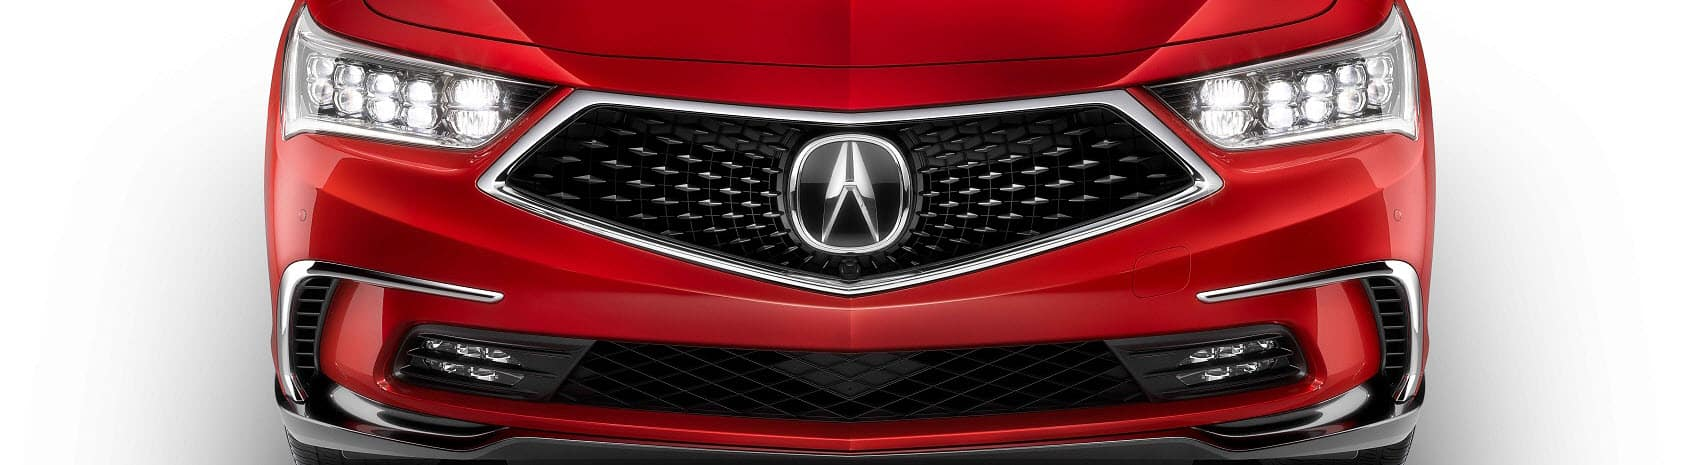 2019 Acura RLX Red